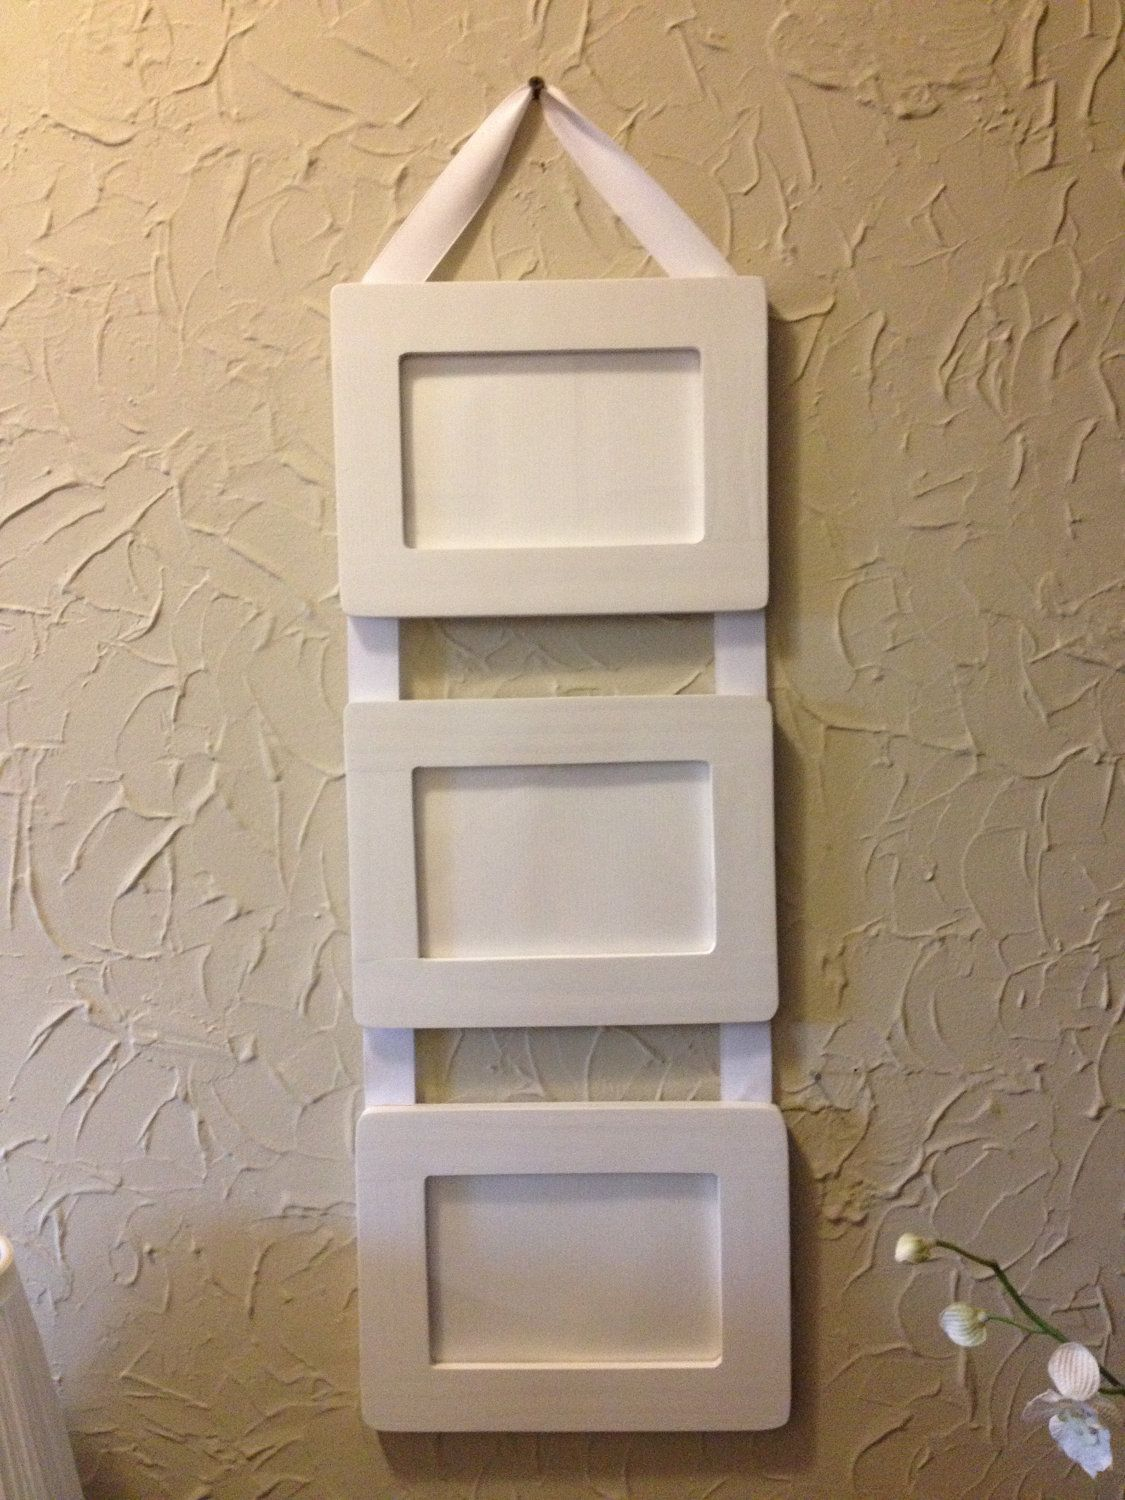 Ribbon Hanging Picture Frames / Set of 3, 4x6 white frames connected ...